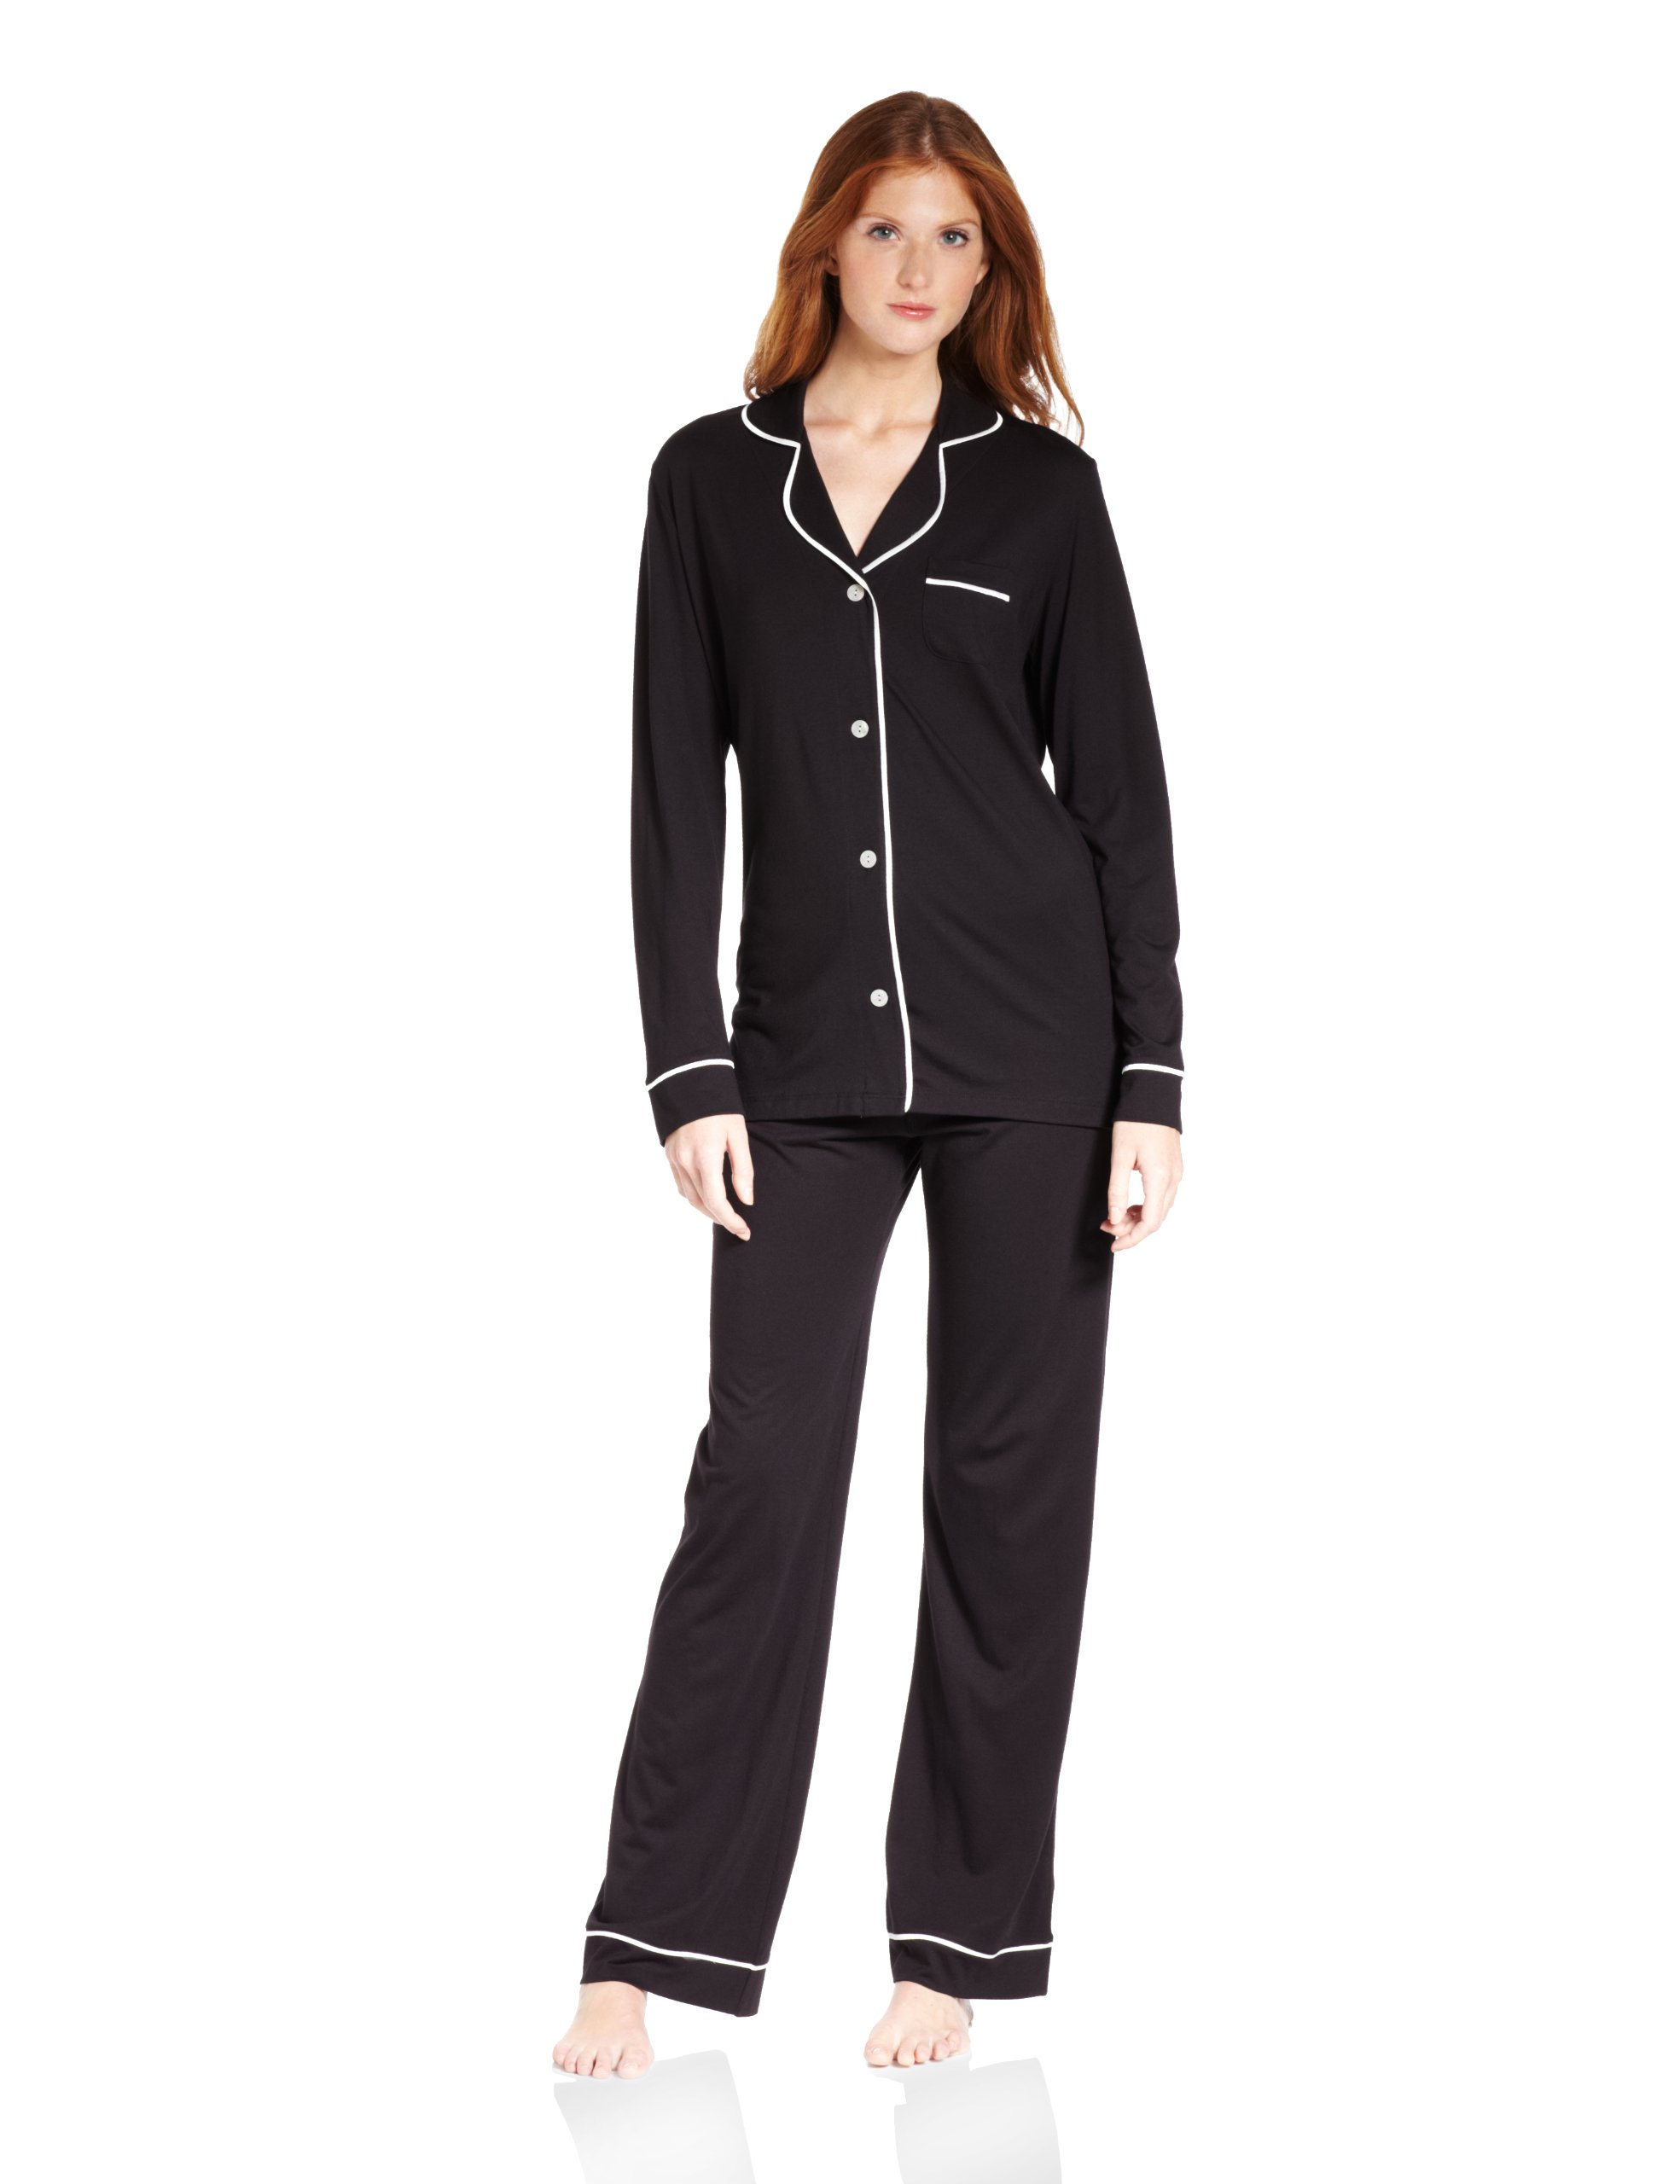 Cosabella Women's Amore Pajama Set, Black/Ivory, Small by Cosabella